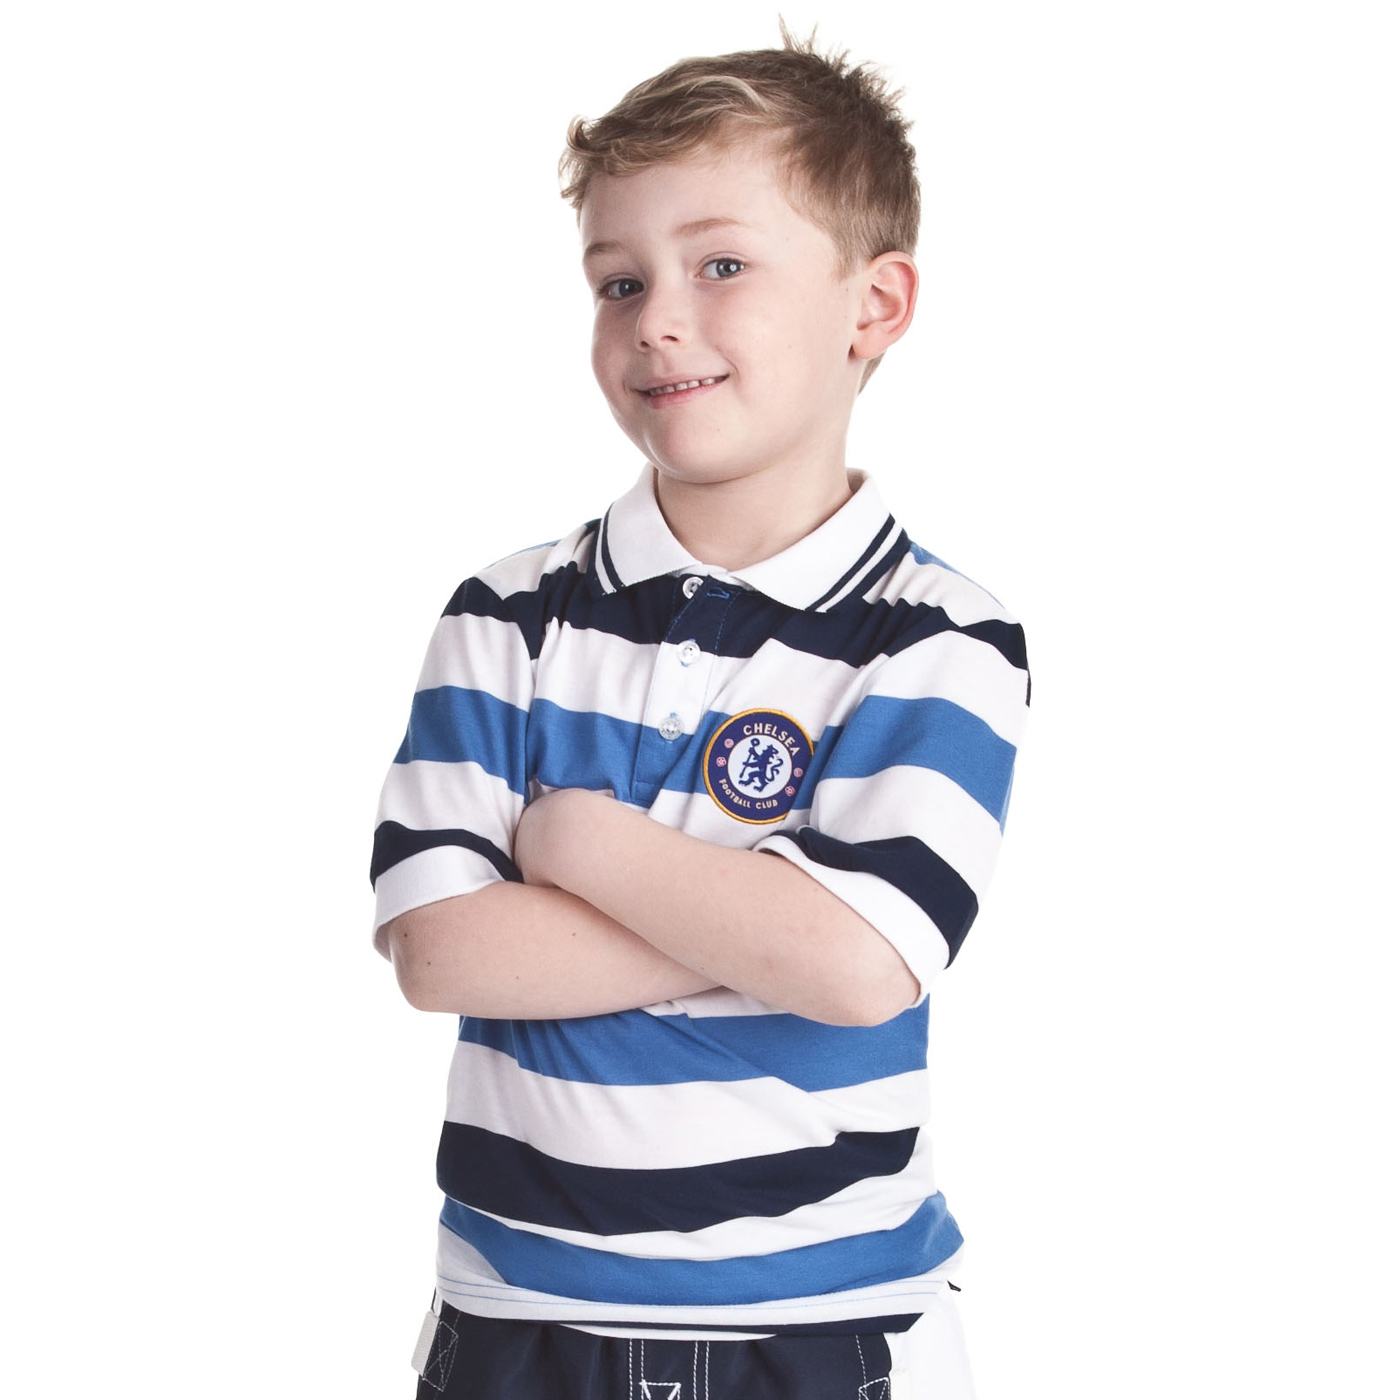 Chelsea Fashion Yarn Dye Striped Polo - White/Navy/Strong Blue - Older Boys